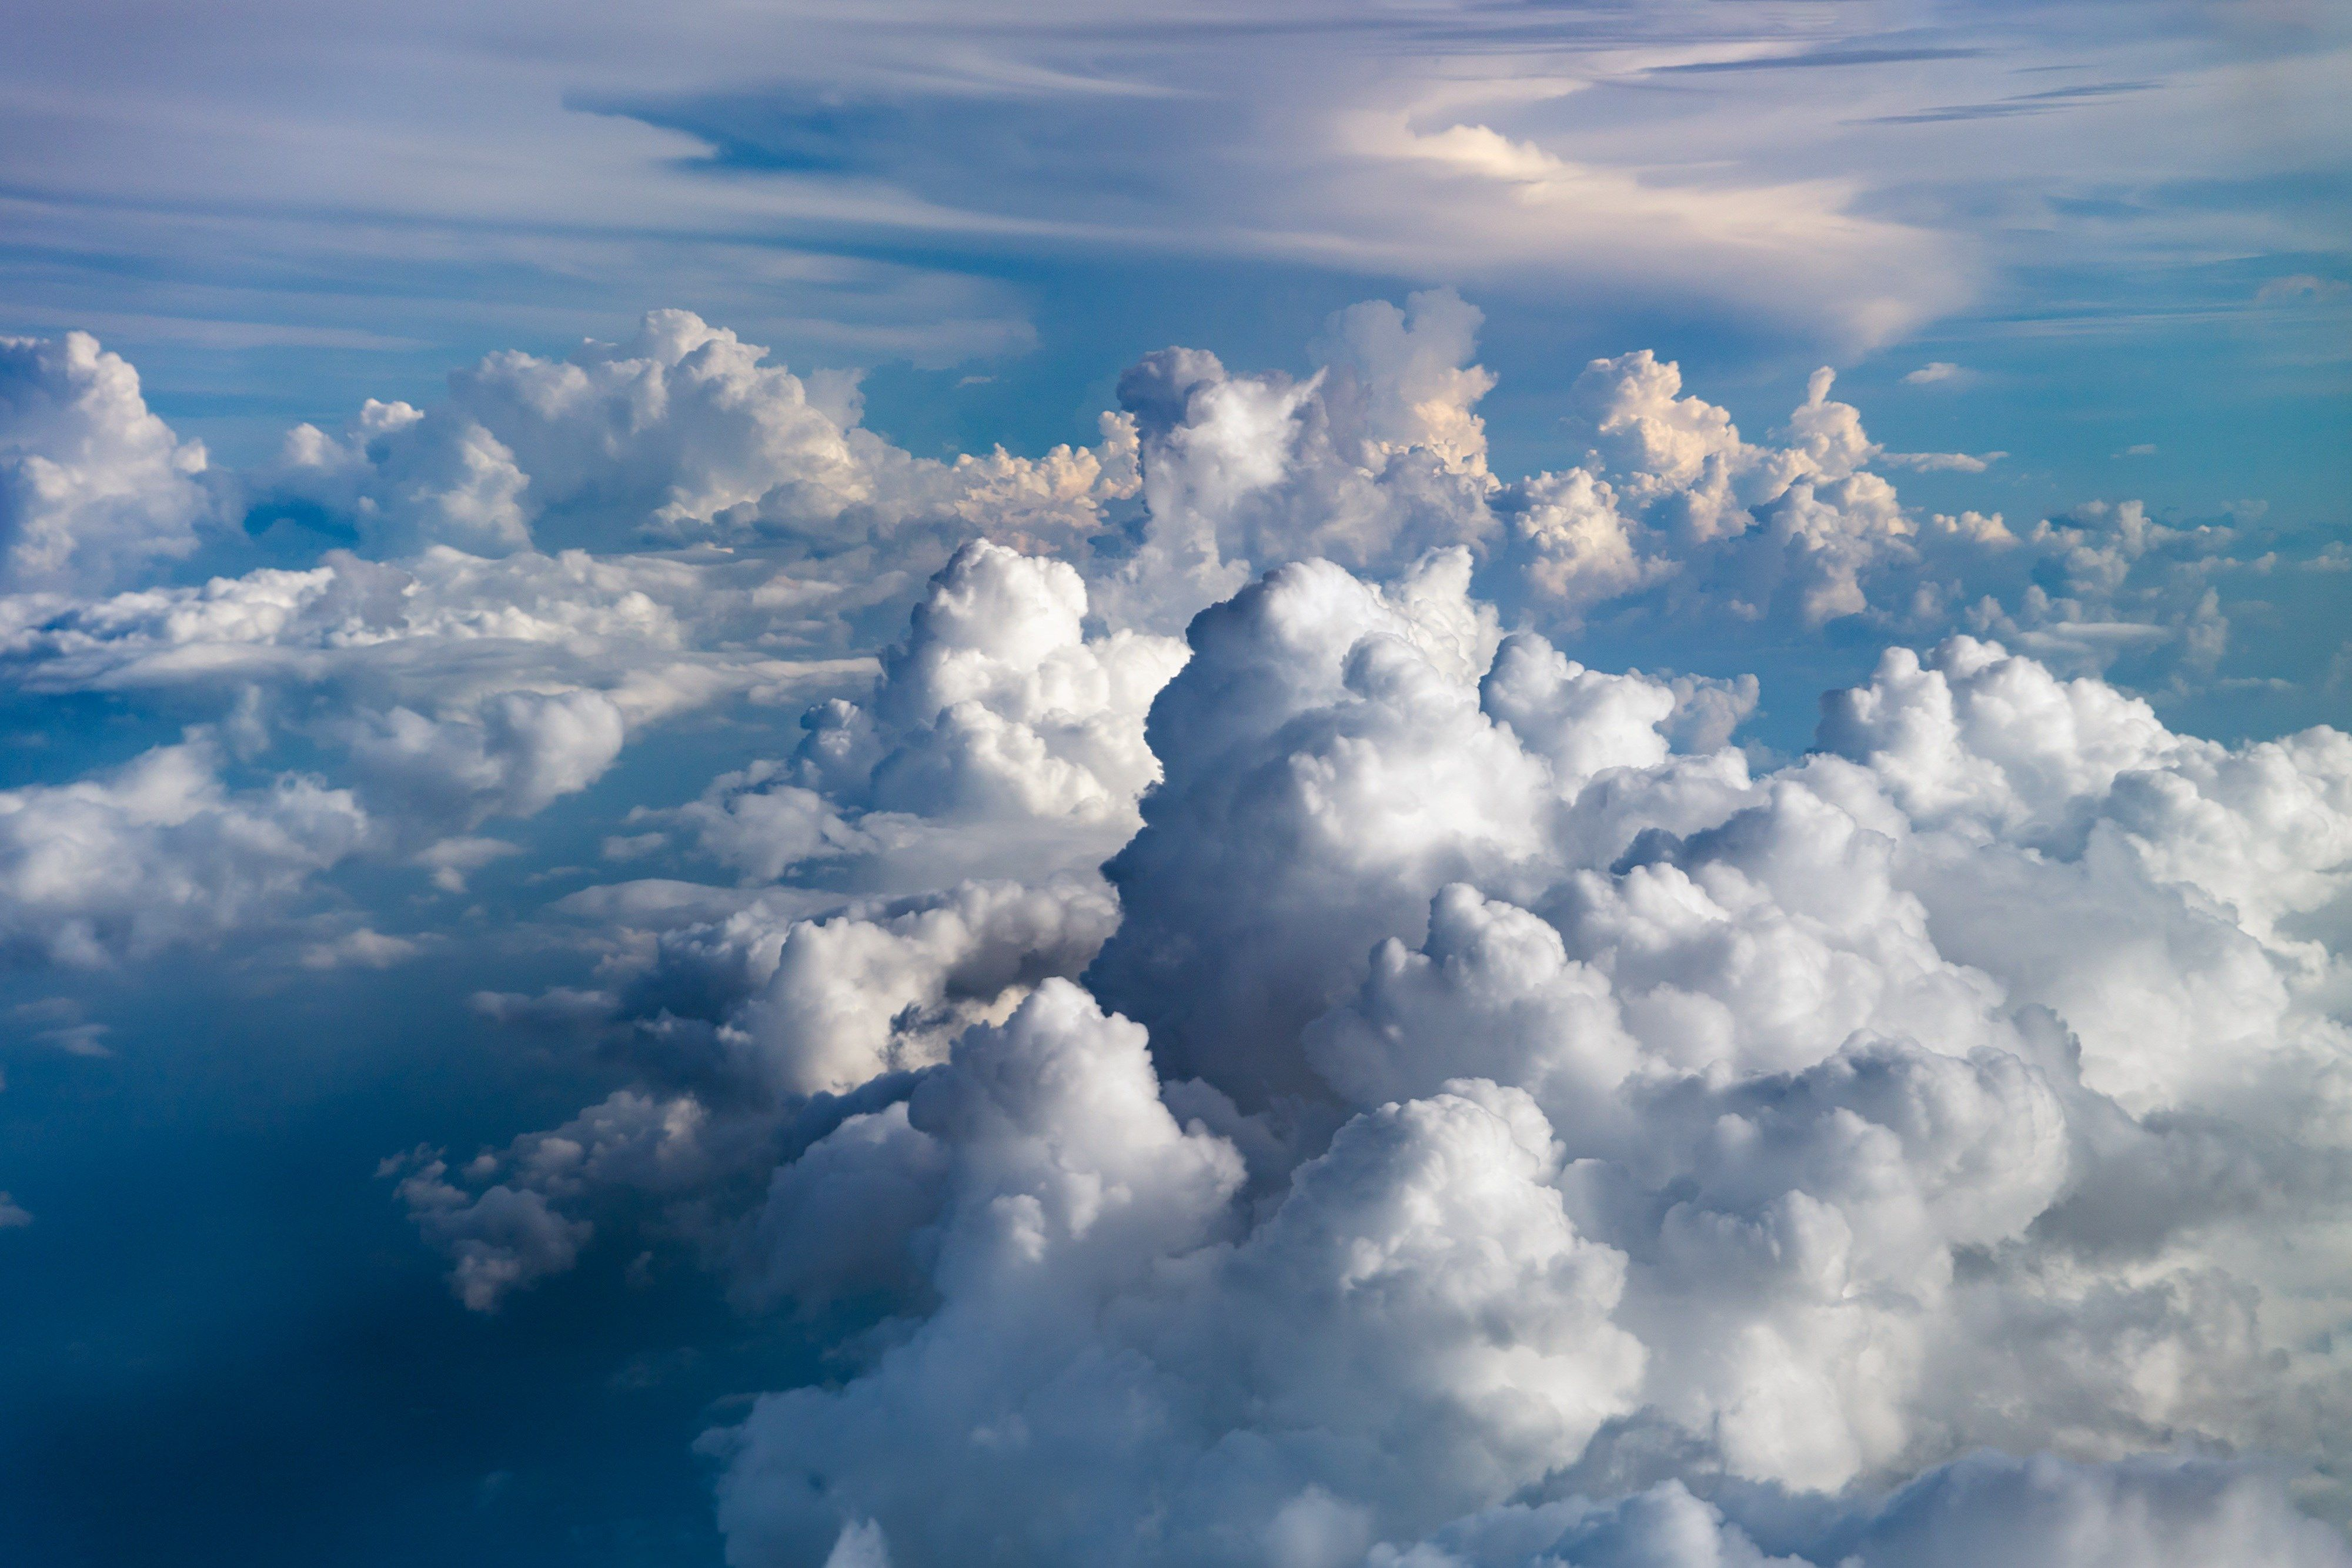 cloud 4k ultra hd wallpapers » High quality walls